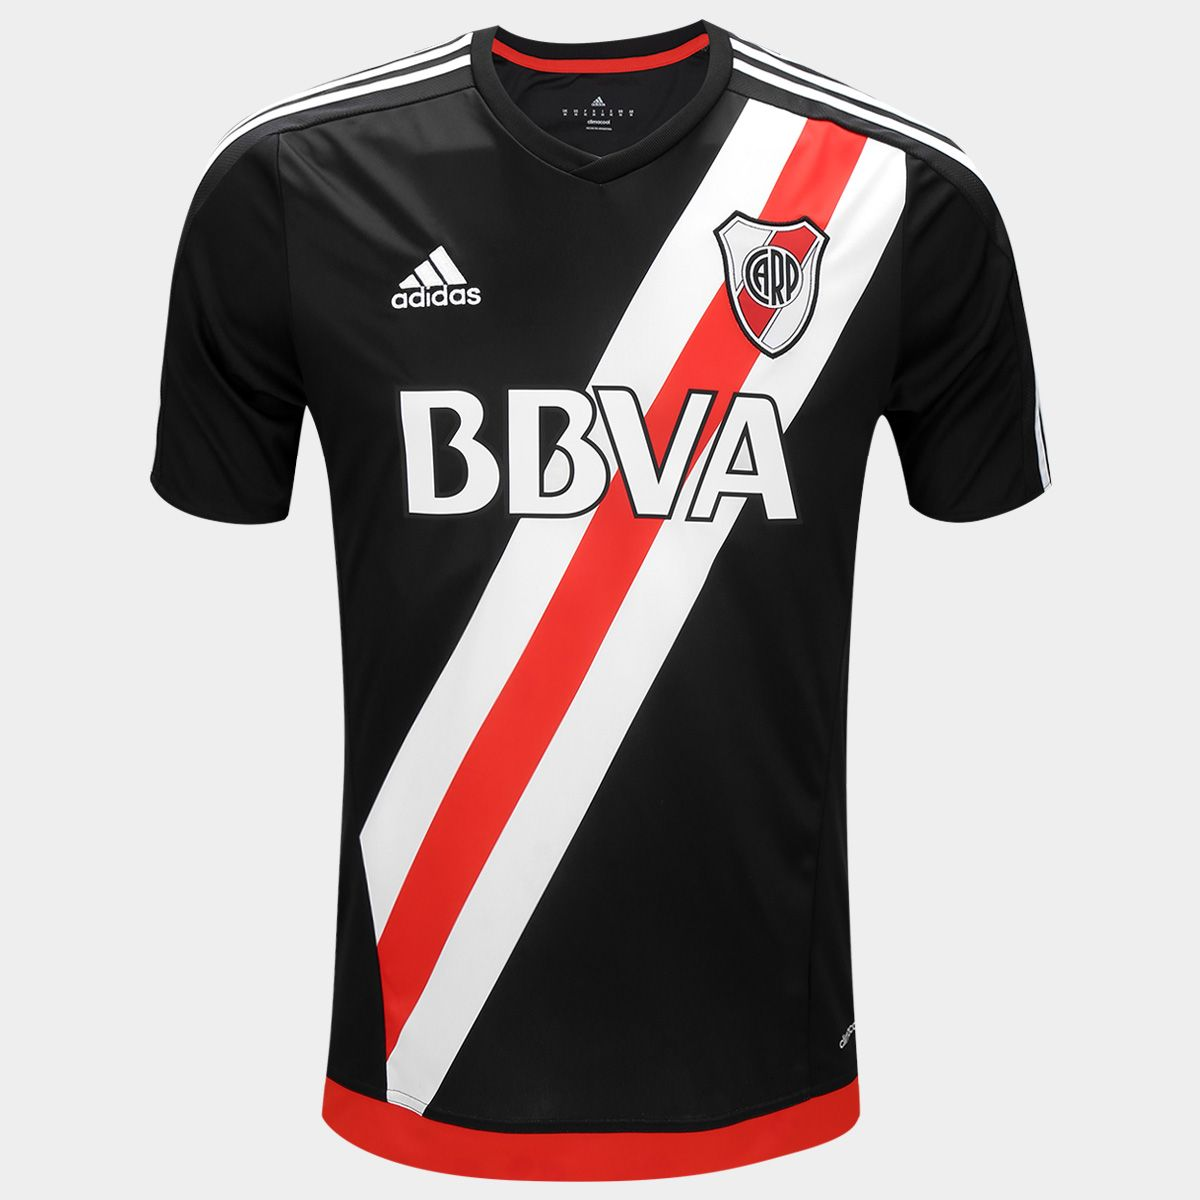 aafacc0bc1 Adidas River Plate 16-17 Special Kit Released - Footy Headlines